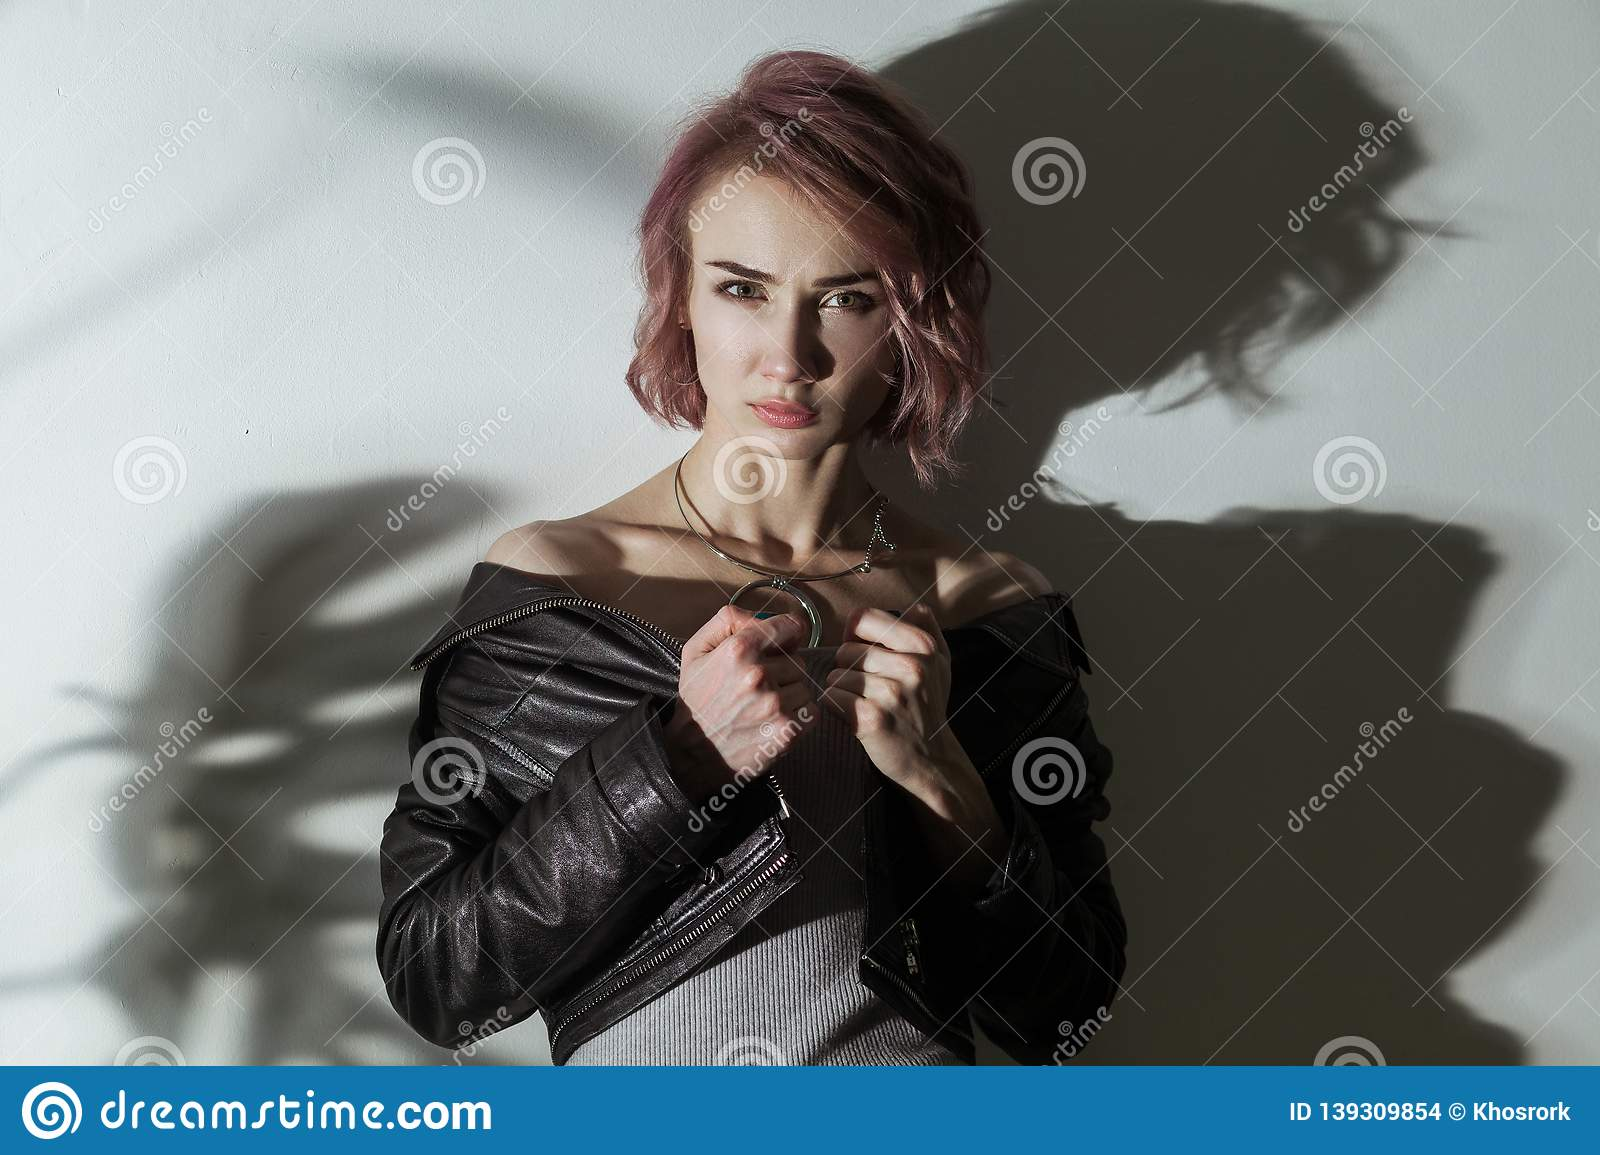 bb54c3ec5fc Beautiful Woman With Makeup And Short Pink Hair In Grey Dress And ...